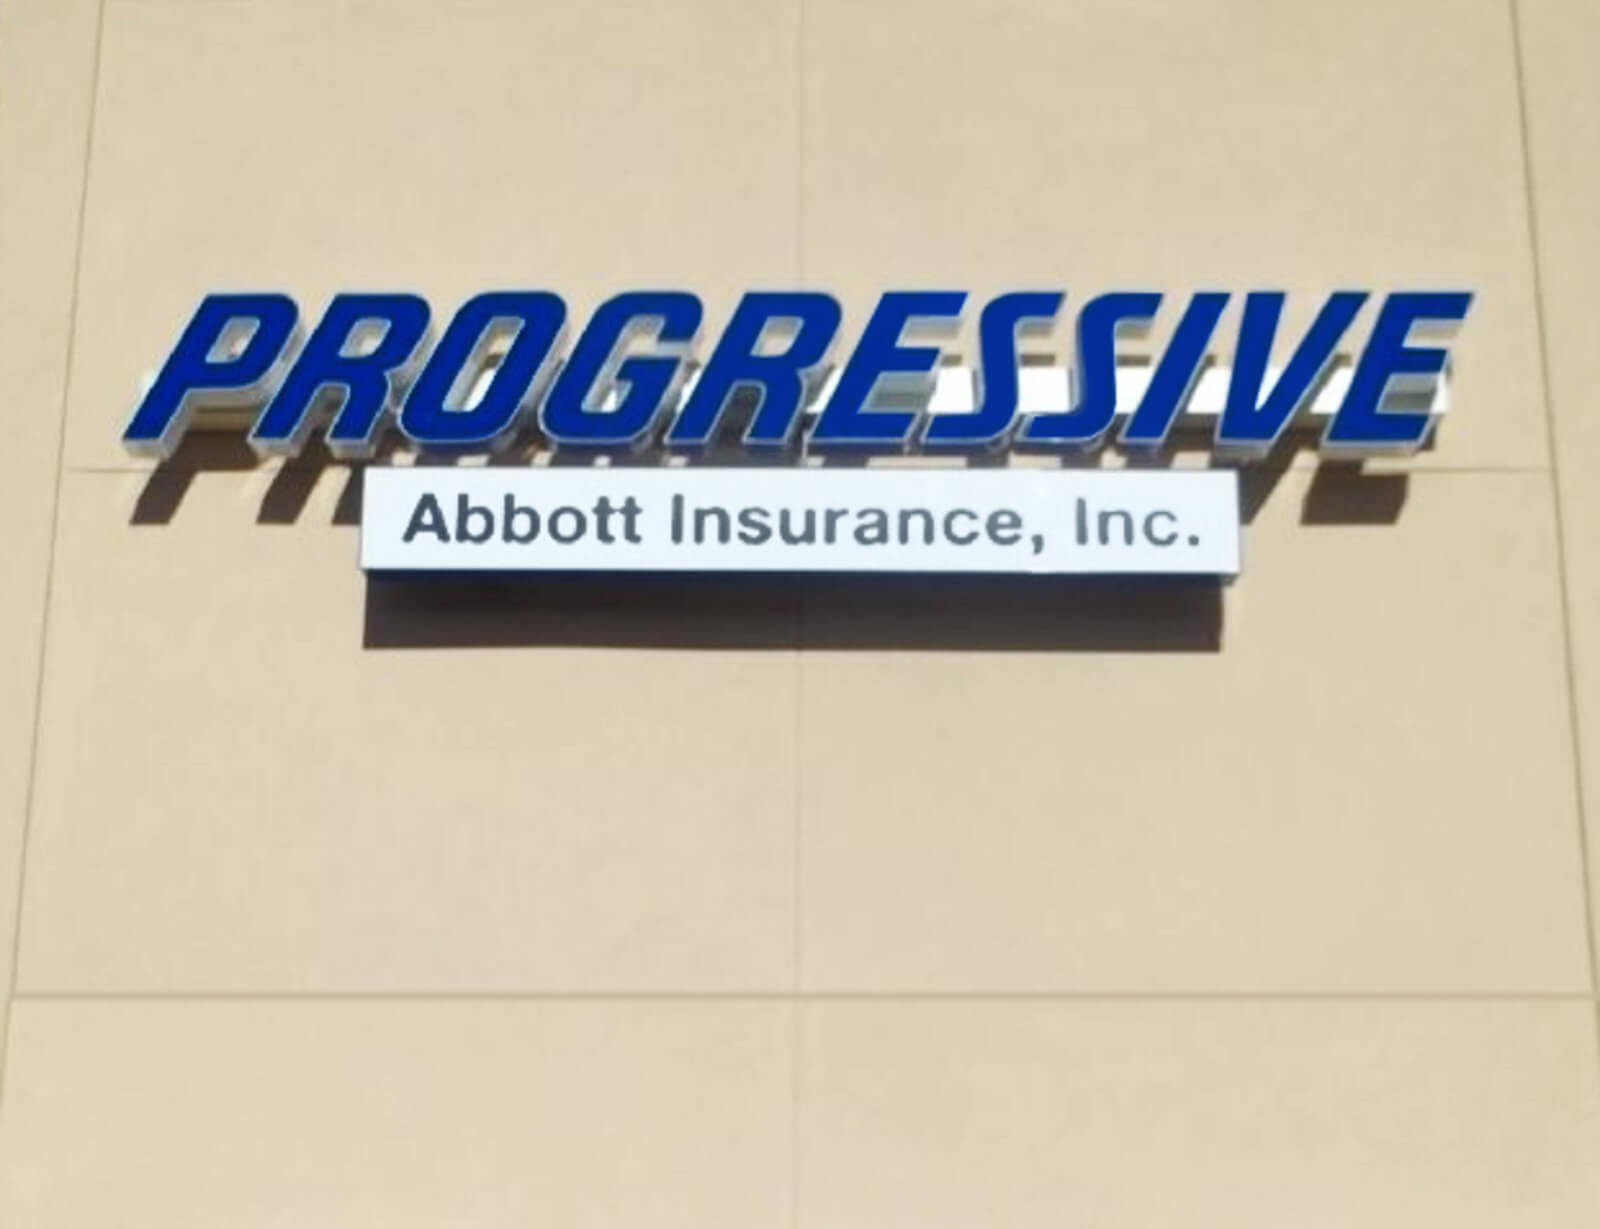 Progressive insurance channel letter sign with custom franchise names.